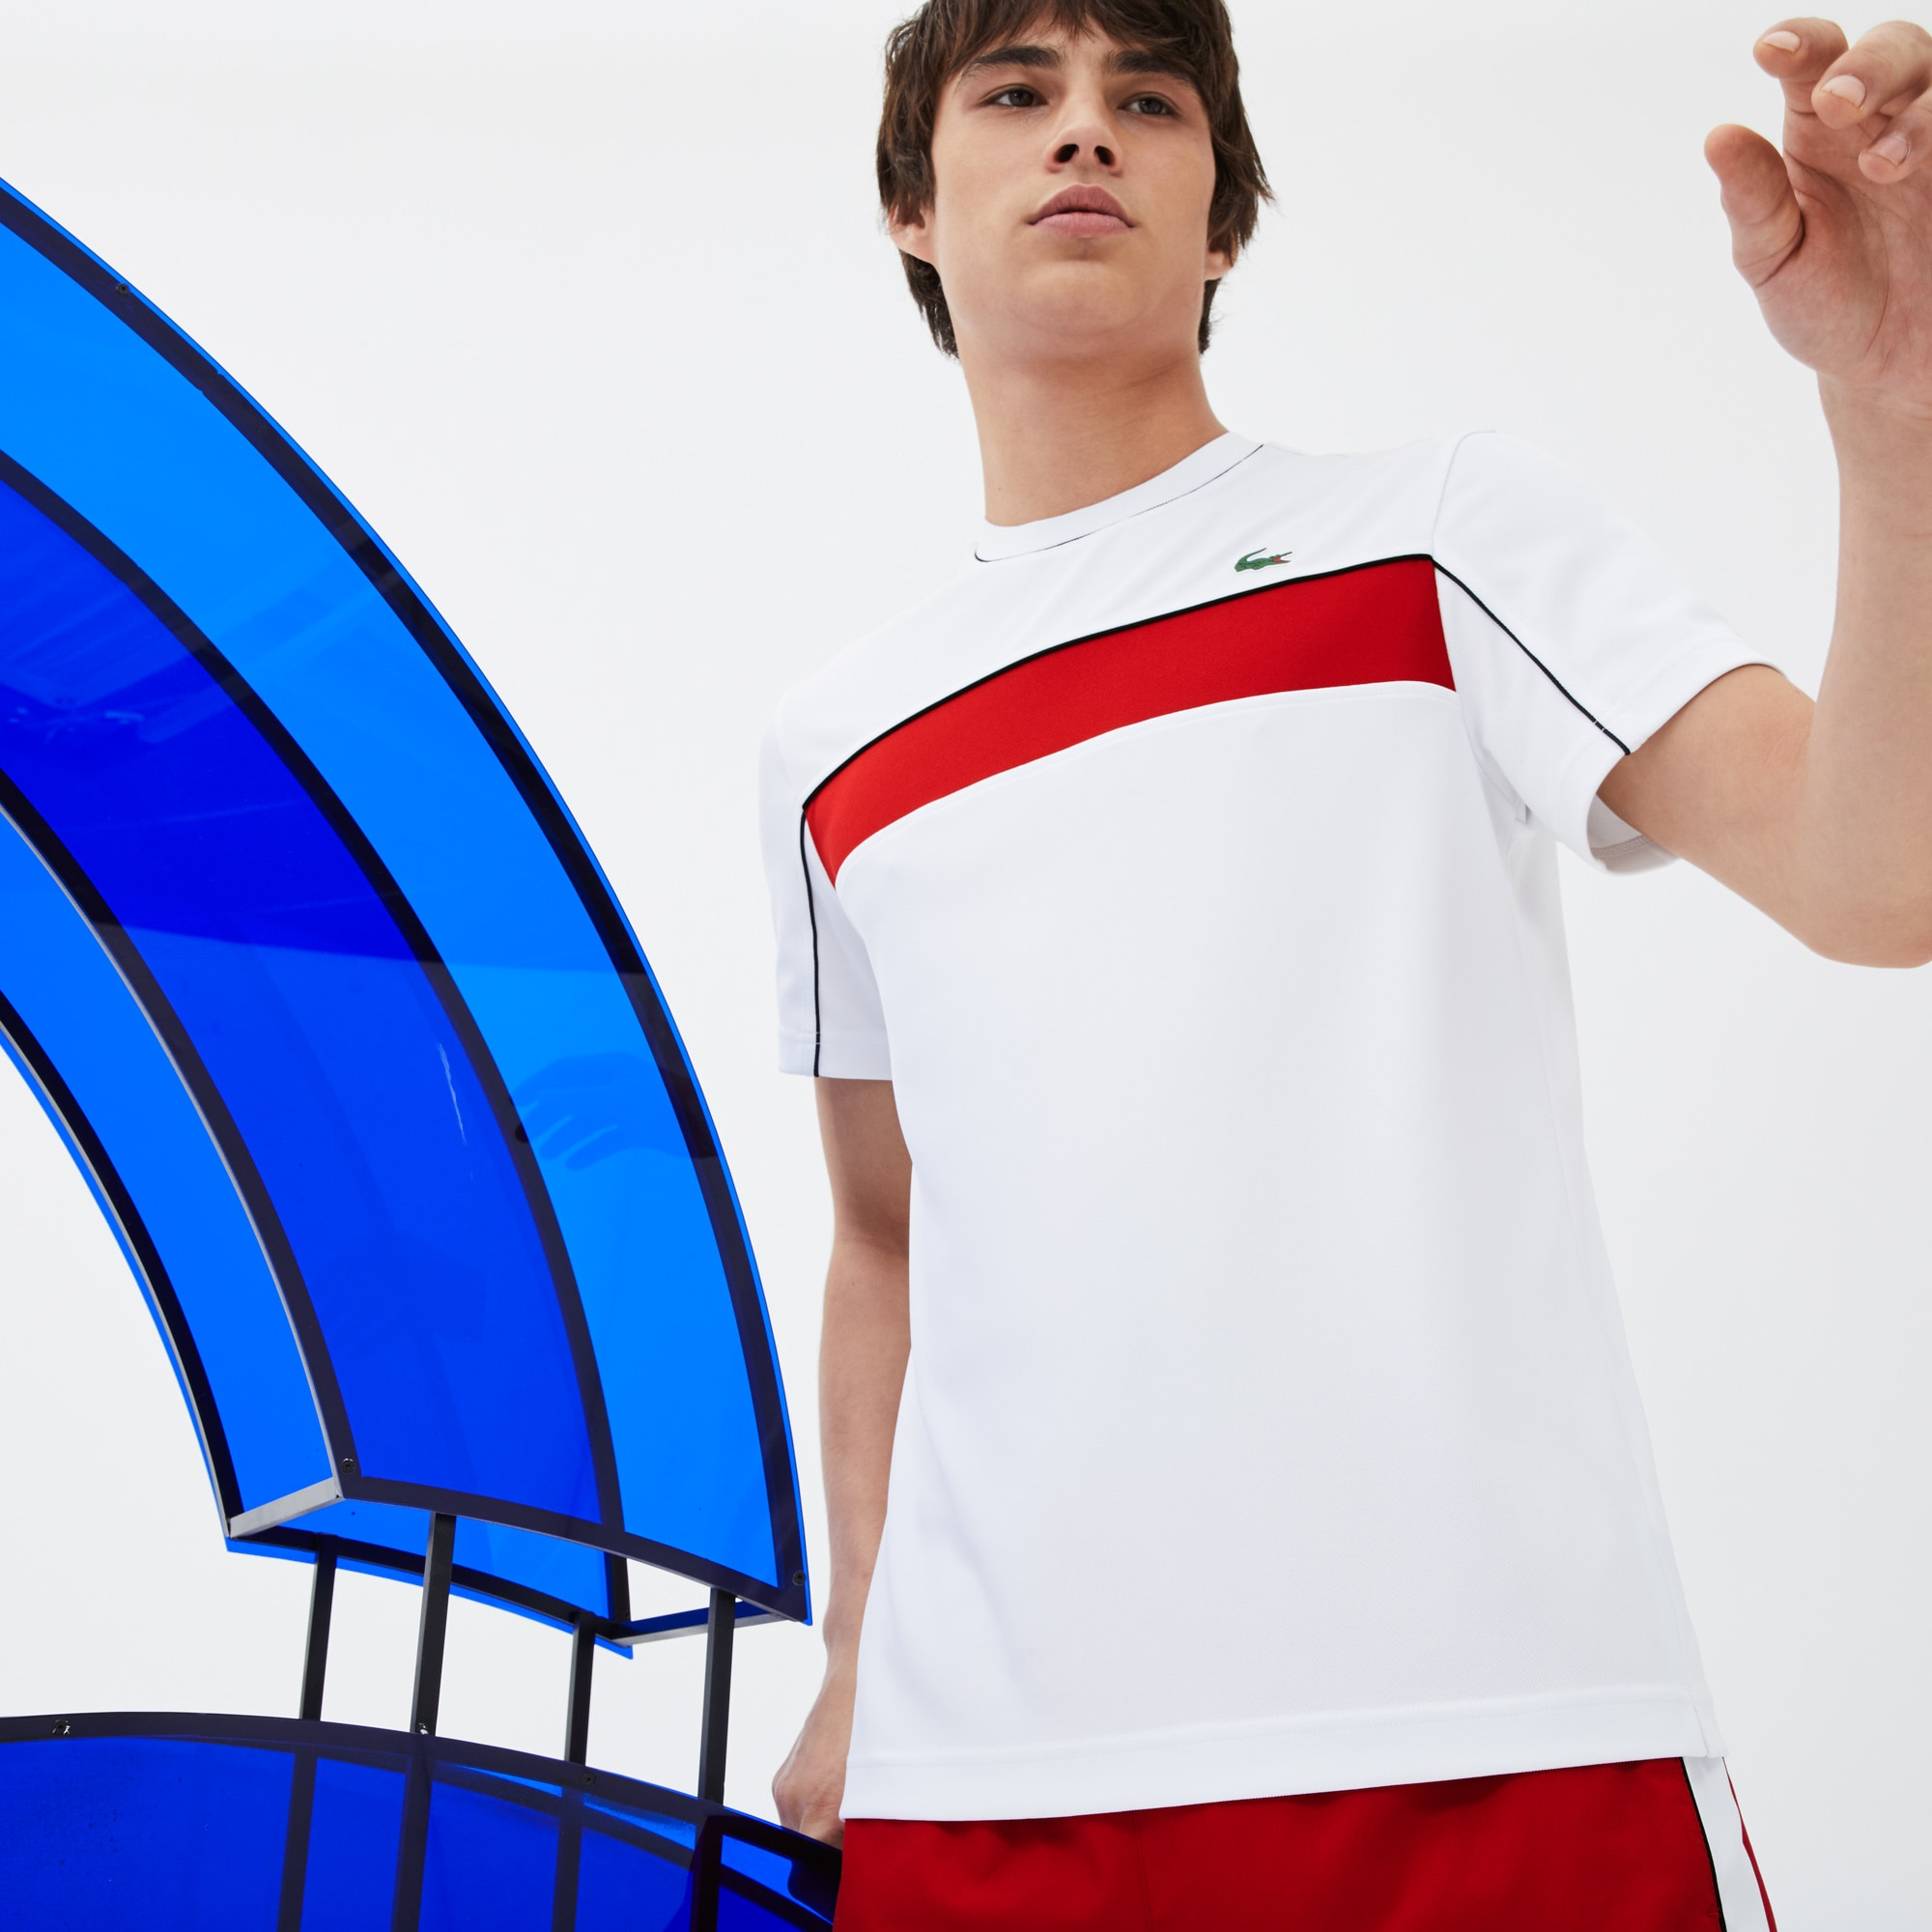 Camiseta LACOSTE SPORT COLLECTION NOVAK DJOKOVIC en piqué técnico color block